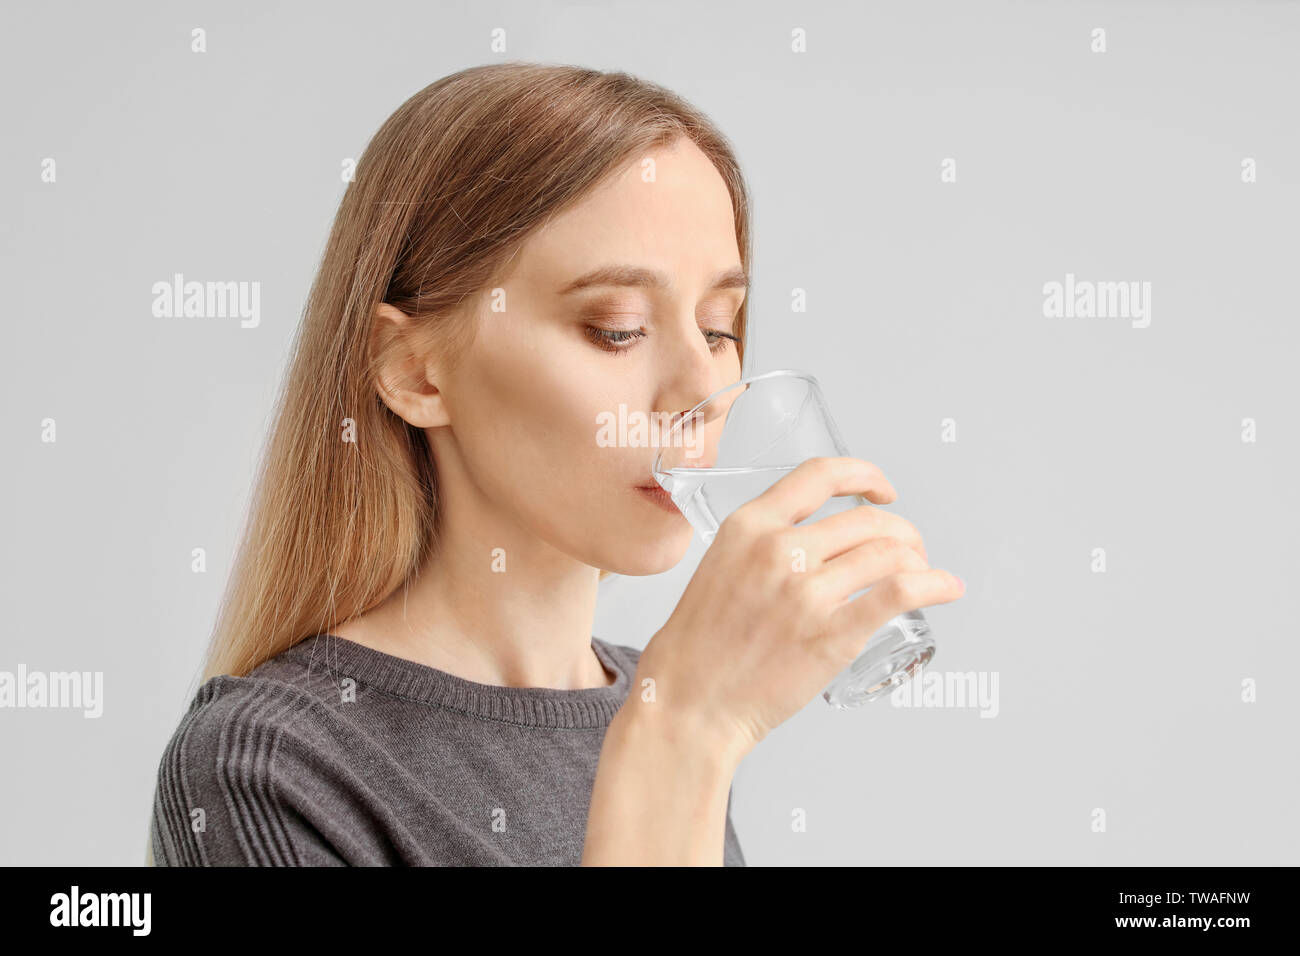 Beautiful young woman drinking water on light background - Stock Image